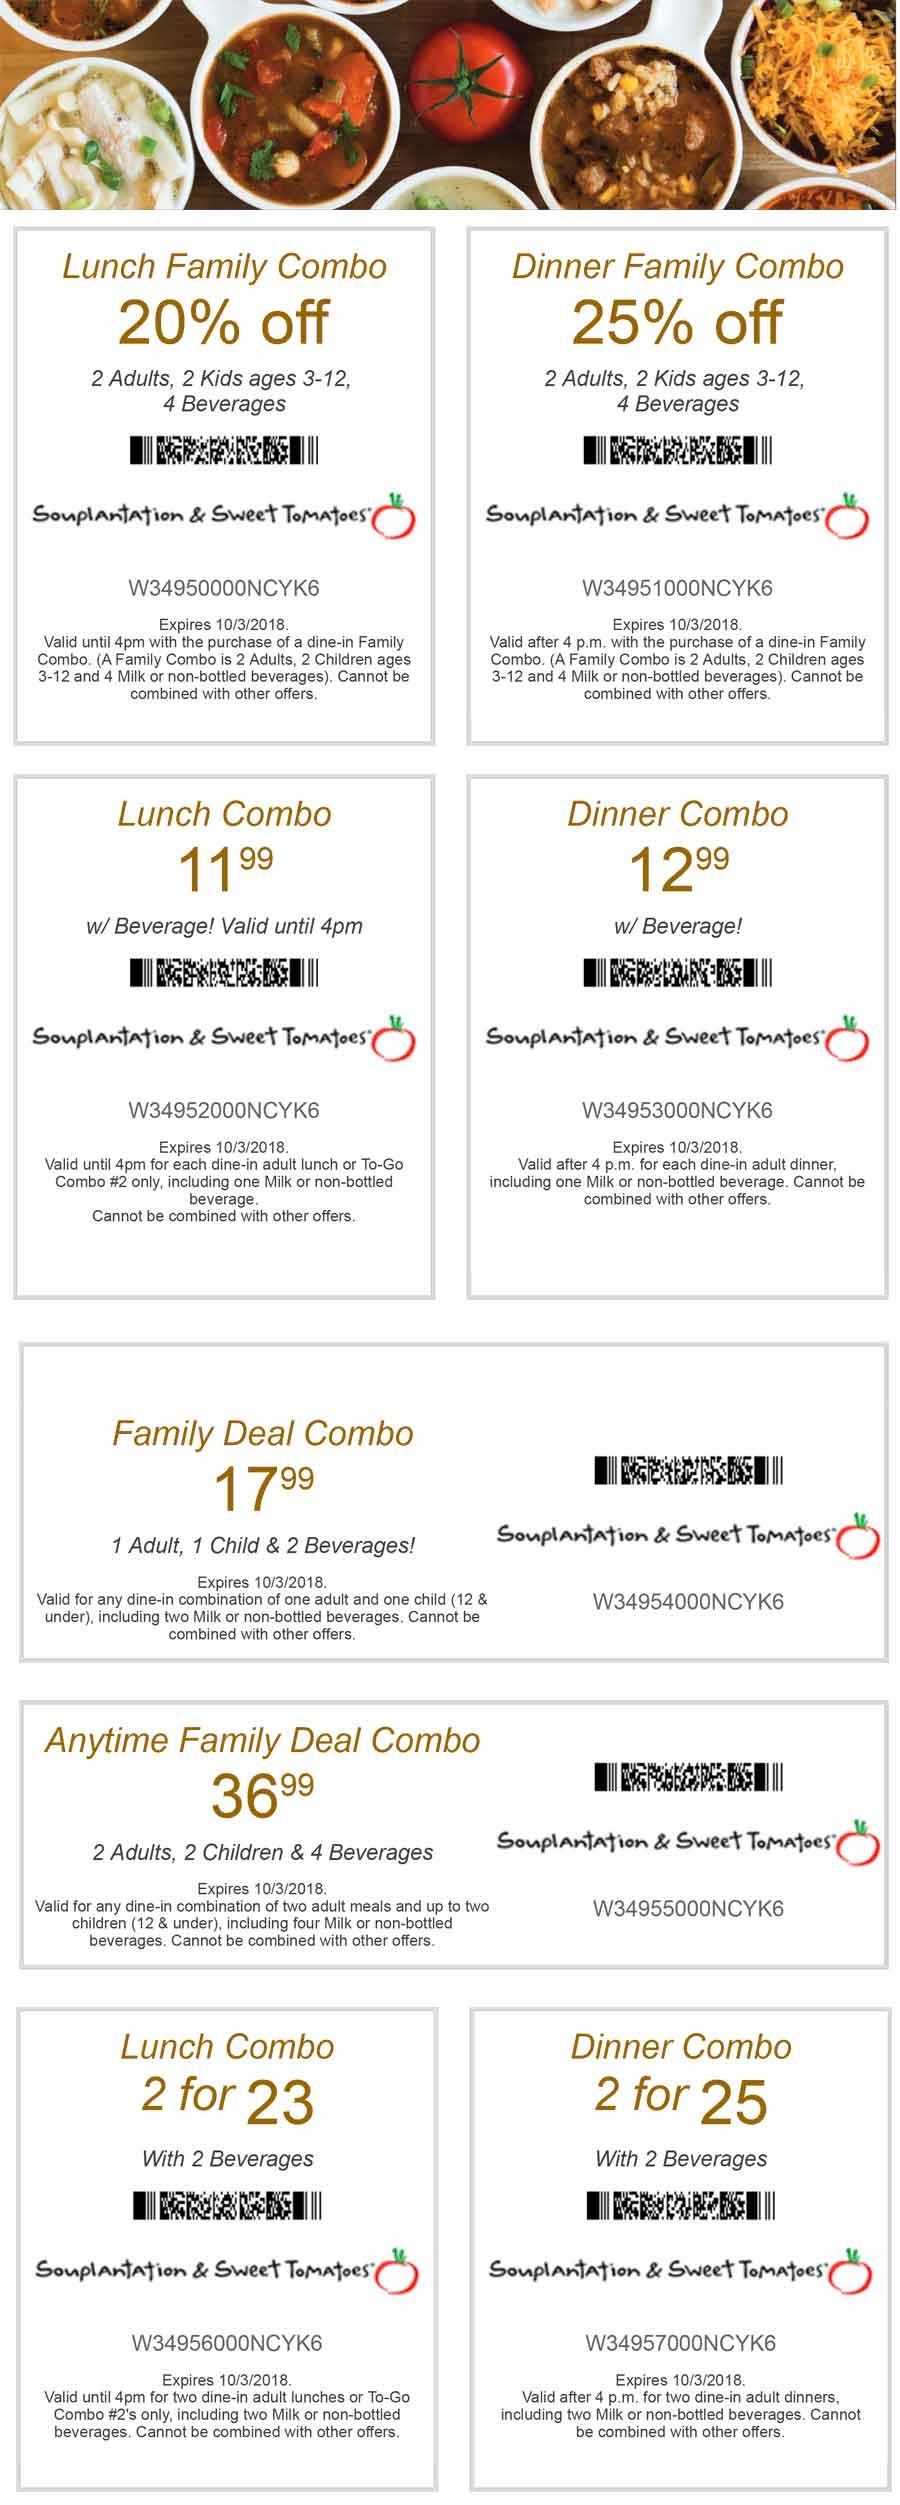 Sweet Tomatoes Coupon May 2020 25% off dinner & more at Souplantation & Sweet Tomatoes